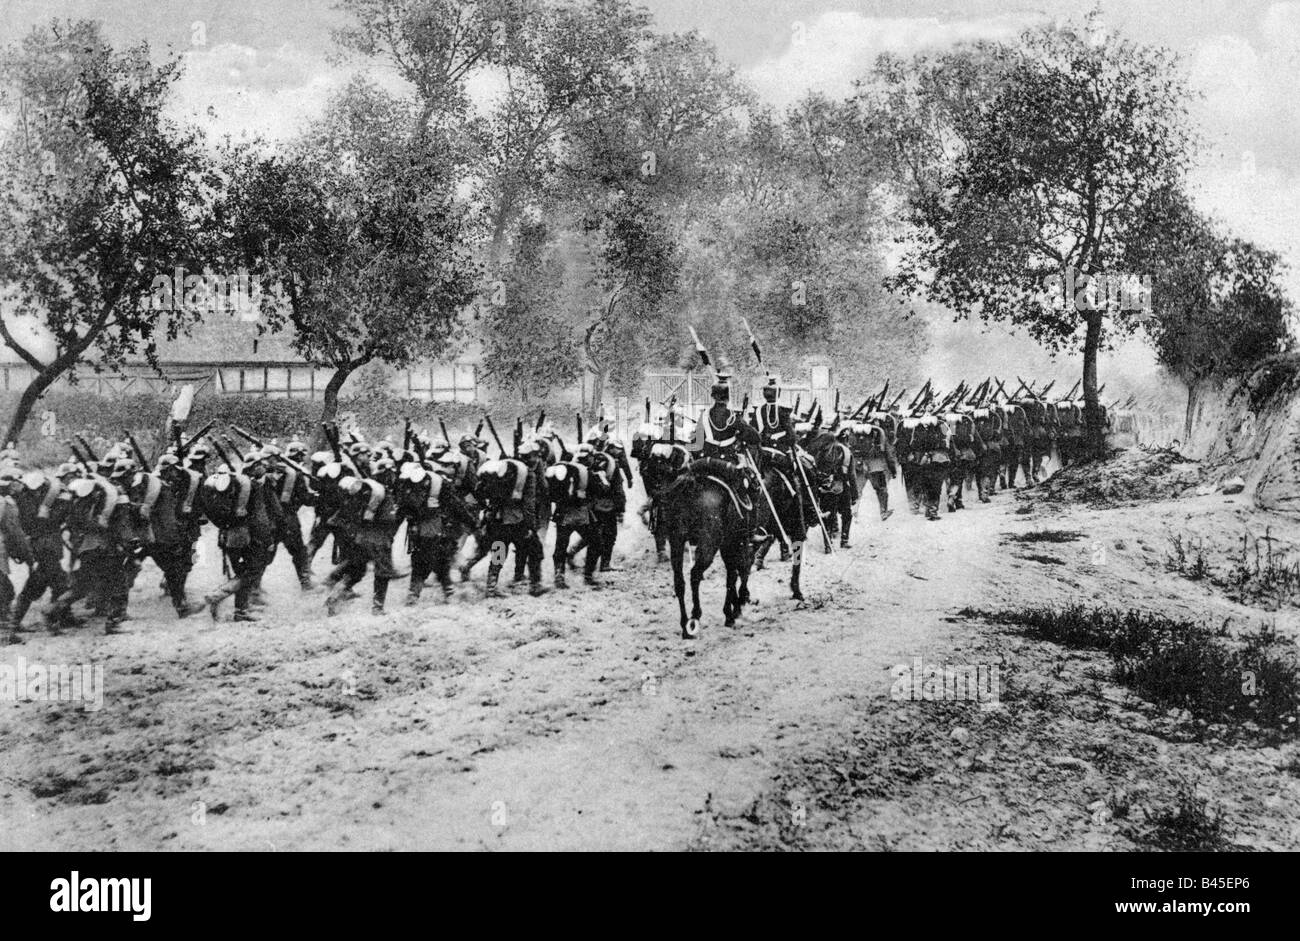 events, First World War / WWI, Western Front, German infantry on the march, accompanied by two uhlans, France, August - Stock Image